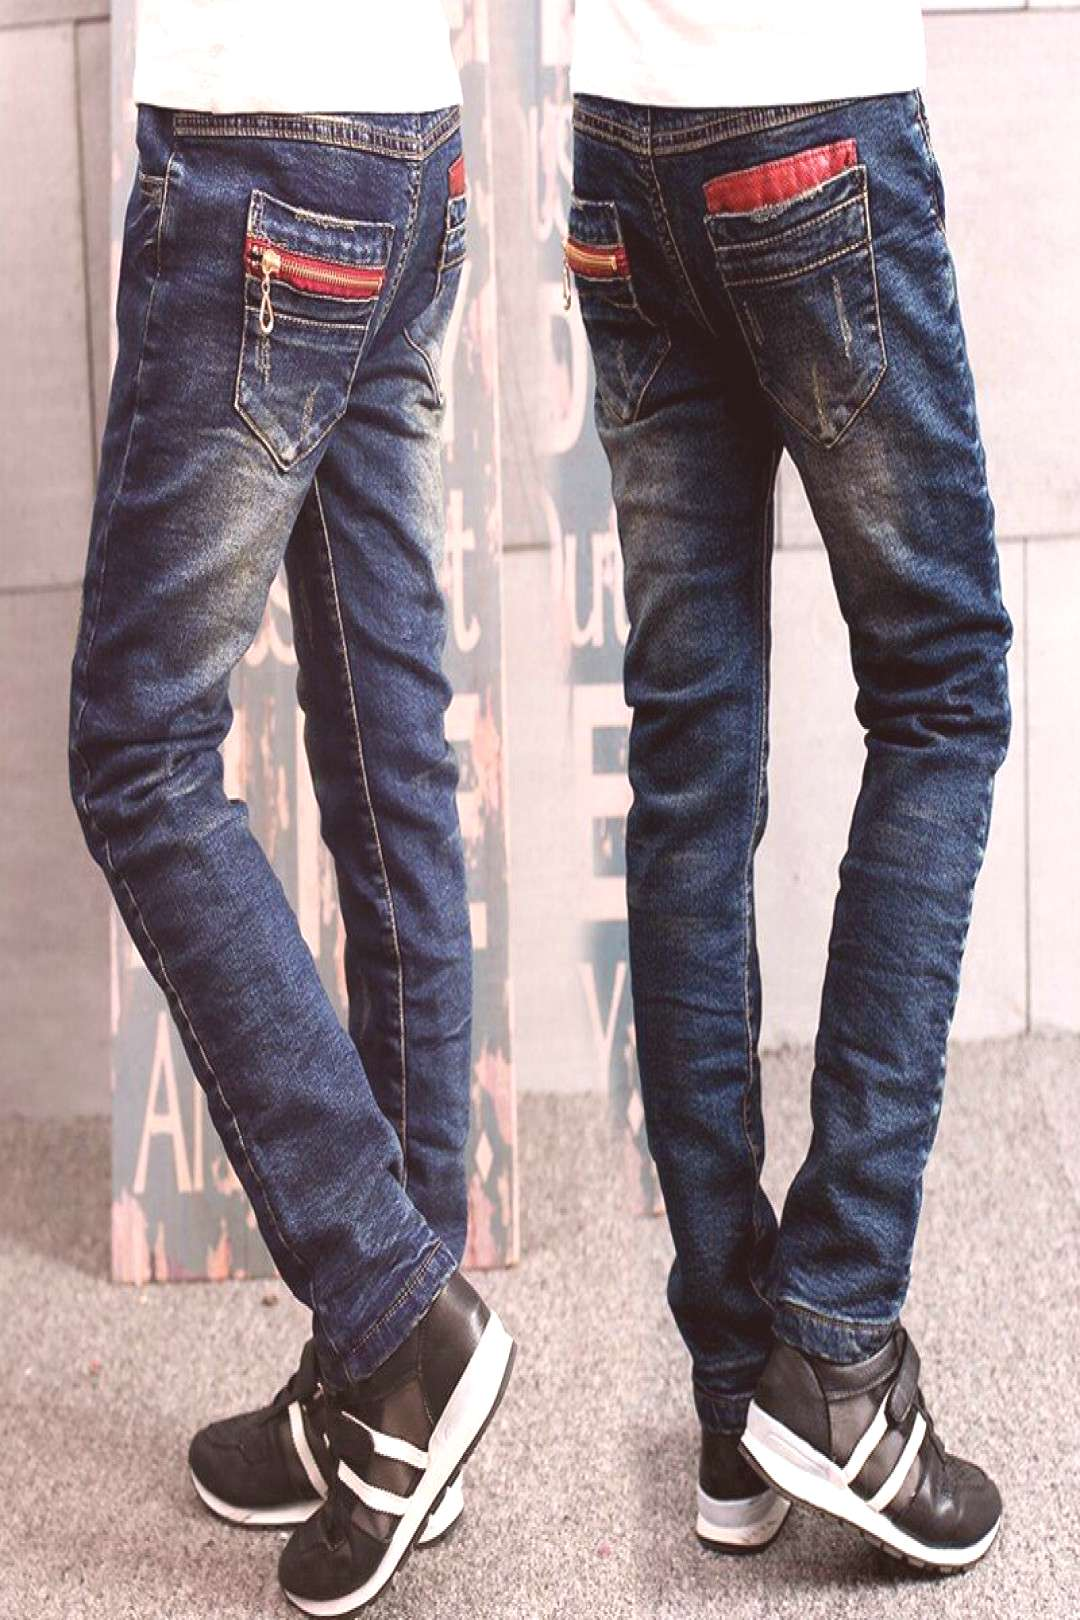 2017 spring childrens children boys jeans solid thin denim baby boys jeans for big kids boys causa